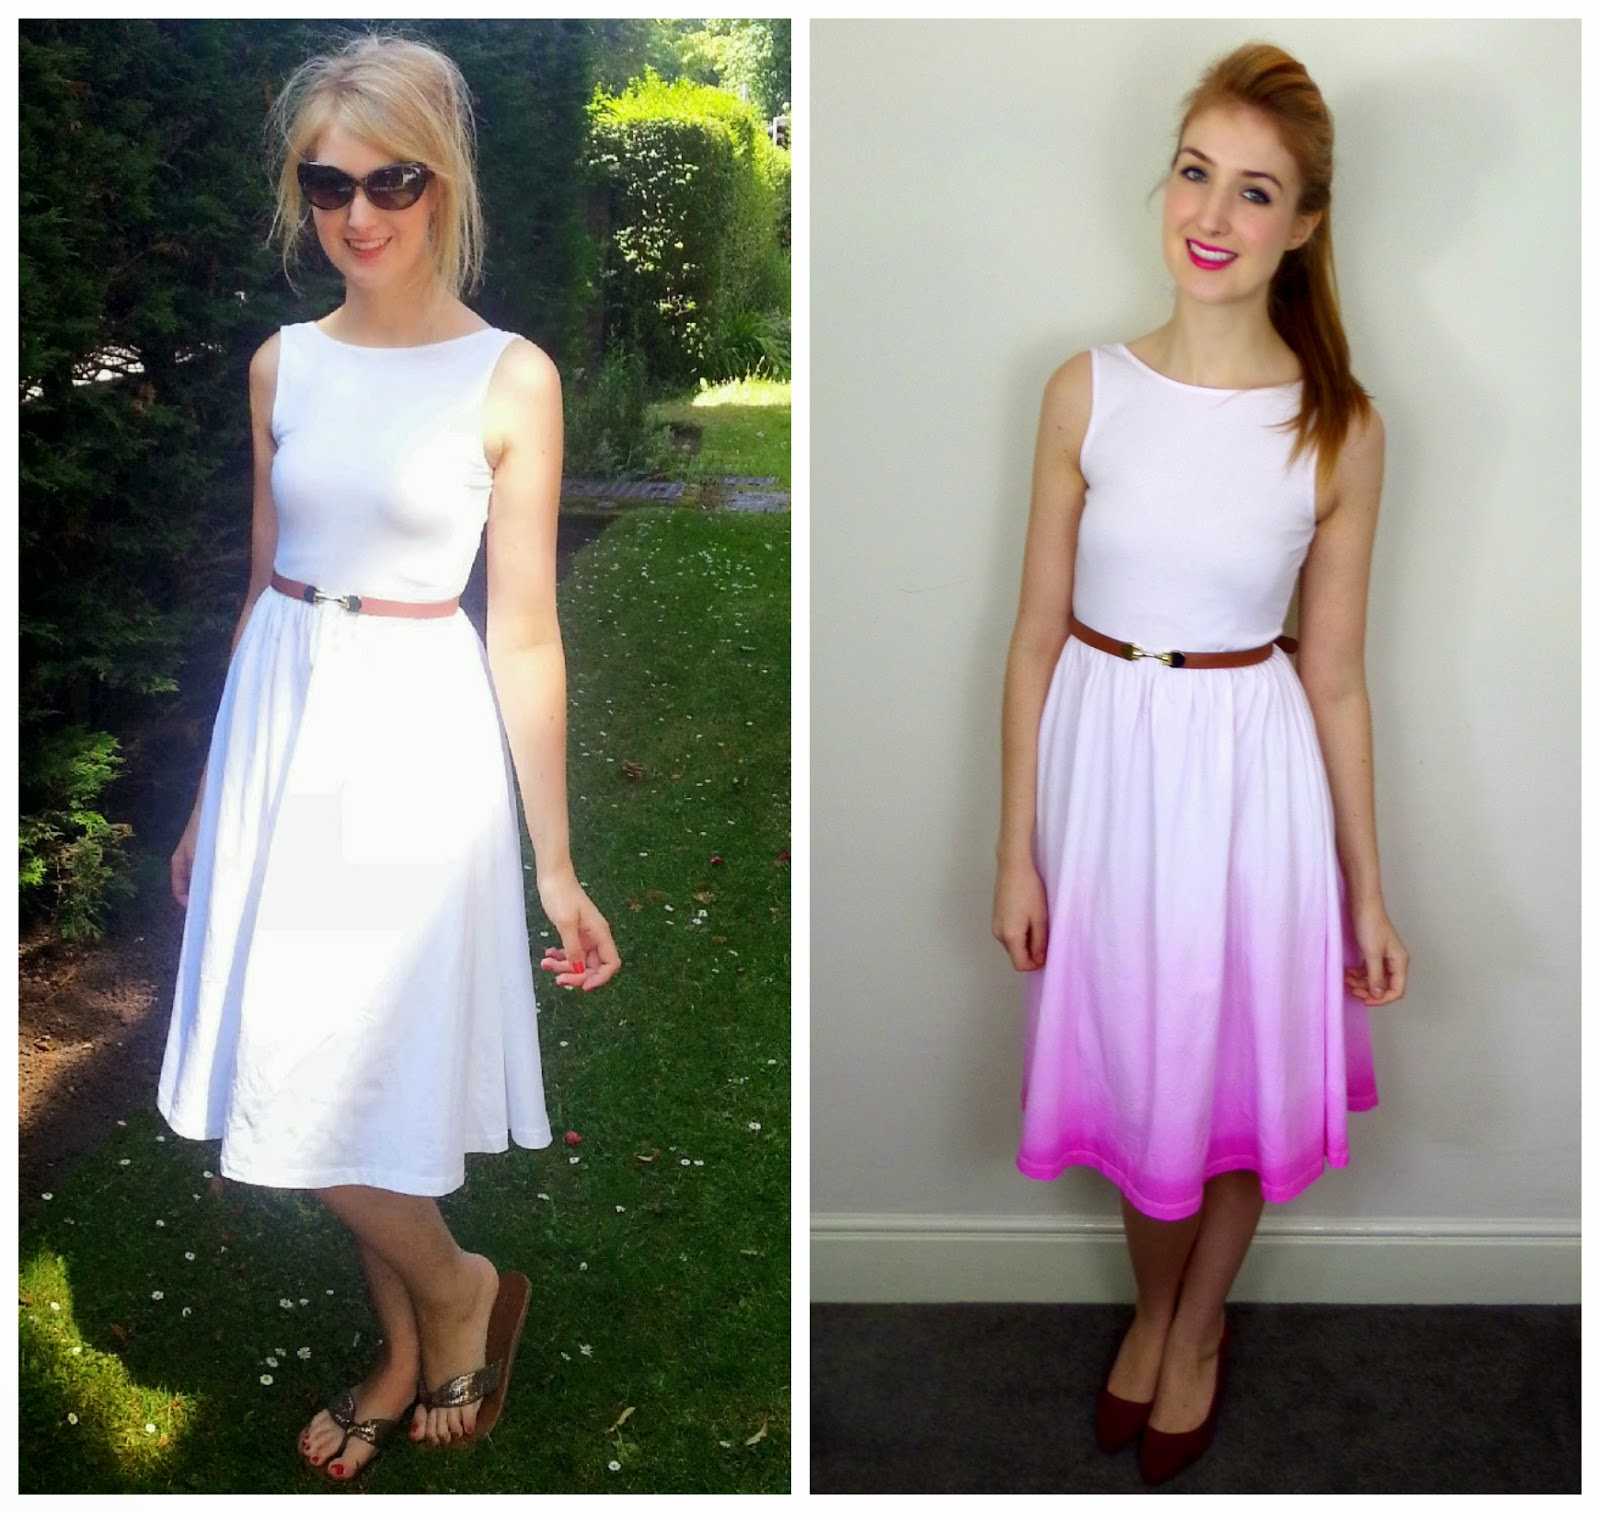 DIY Tutorial: Valentines Ombre Dip Dye Dress Makeover With